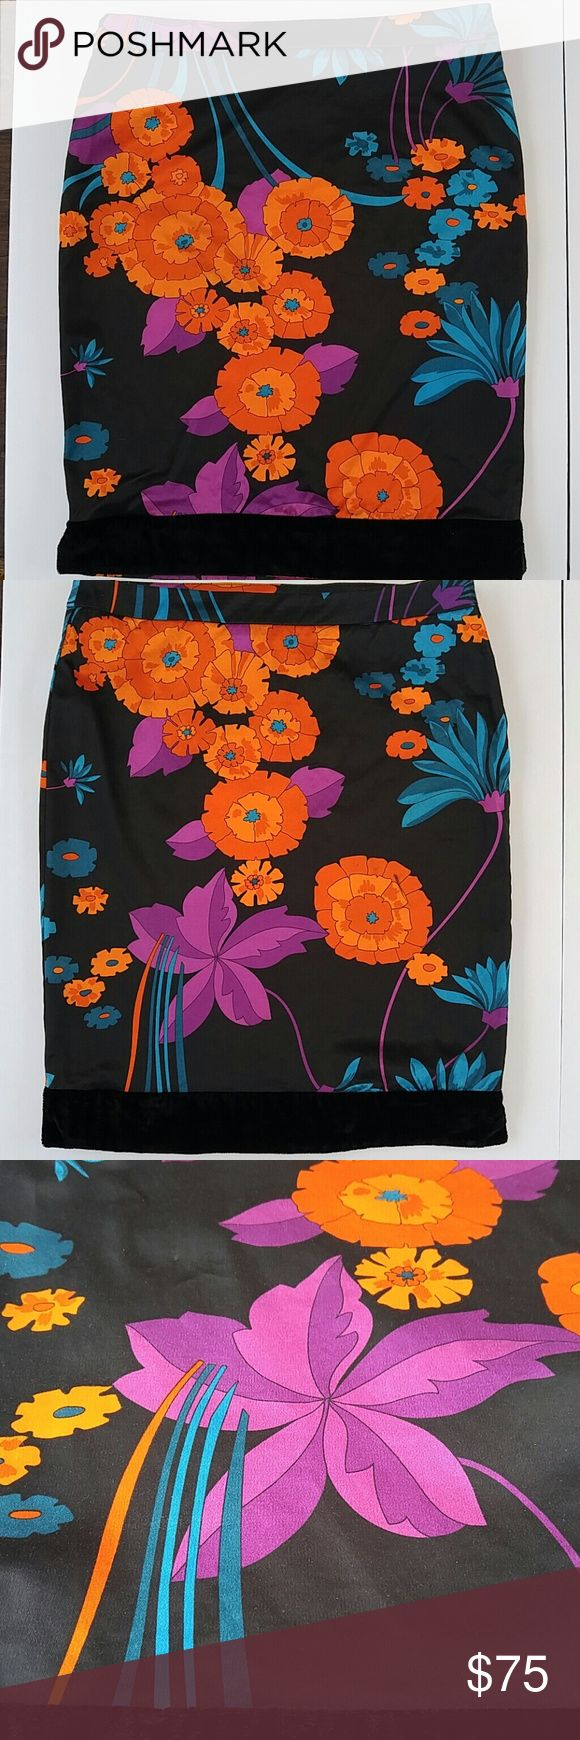 "Dolce & Gabbana Floral Skirt with Velvet Trim Authentic D&G black skirt with stunning orange, violet, and blue flowers. Black velvet trim. Side zipper. Price drastically adjusted due to a pinhead size pull and short streak of black marker? on orange flower - find in pic. I haven't tried to remove but the skirt is actually washable! Just iron inside out. Approx. 19.5"" long. 14.5"" flat waist. Dolce & Gabbana Skirts"